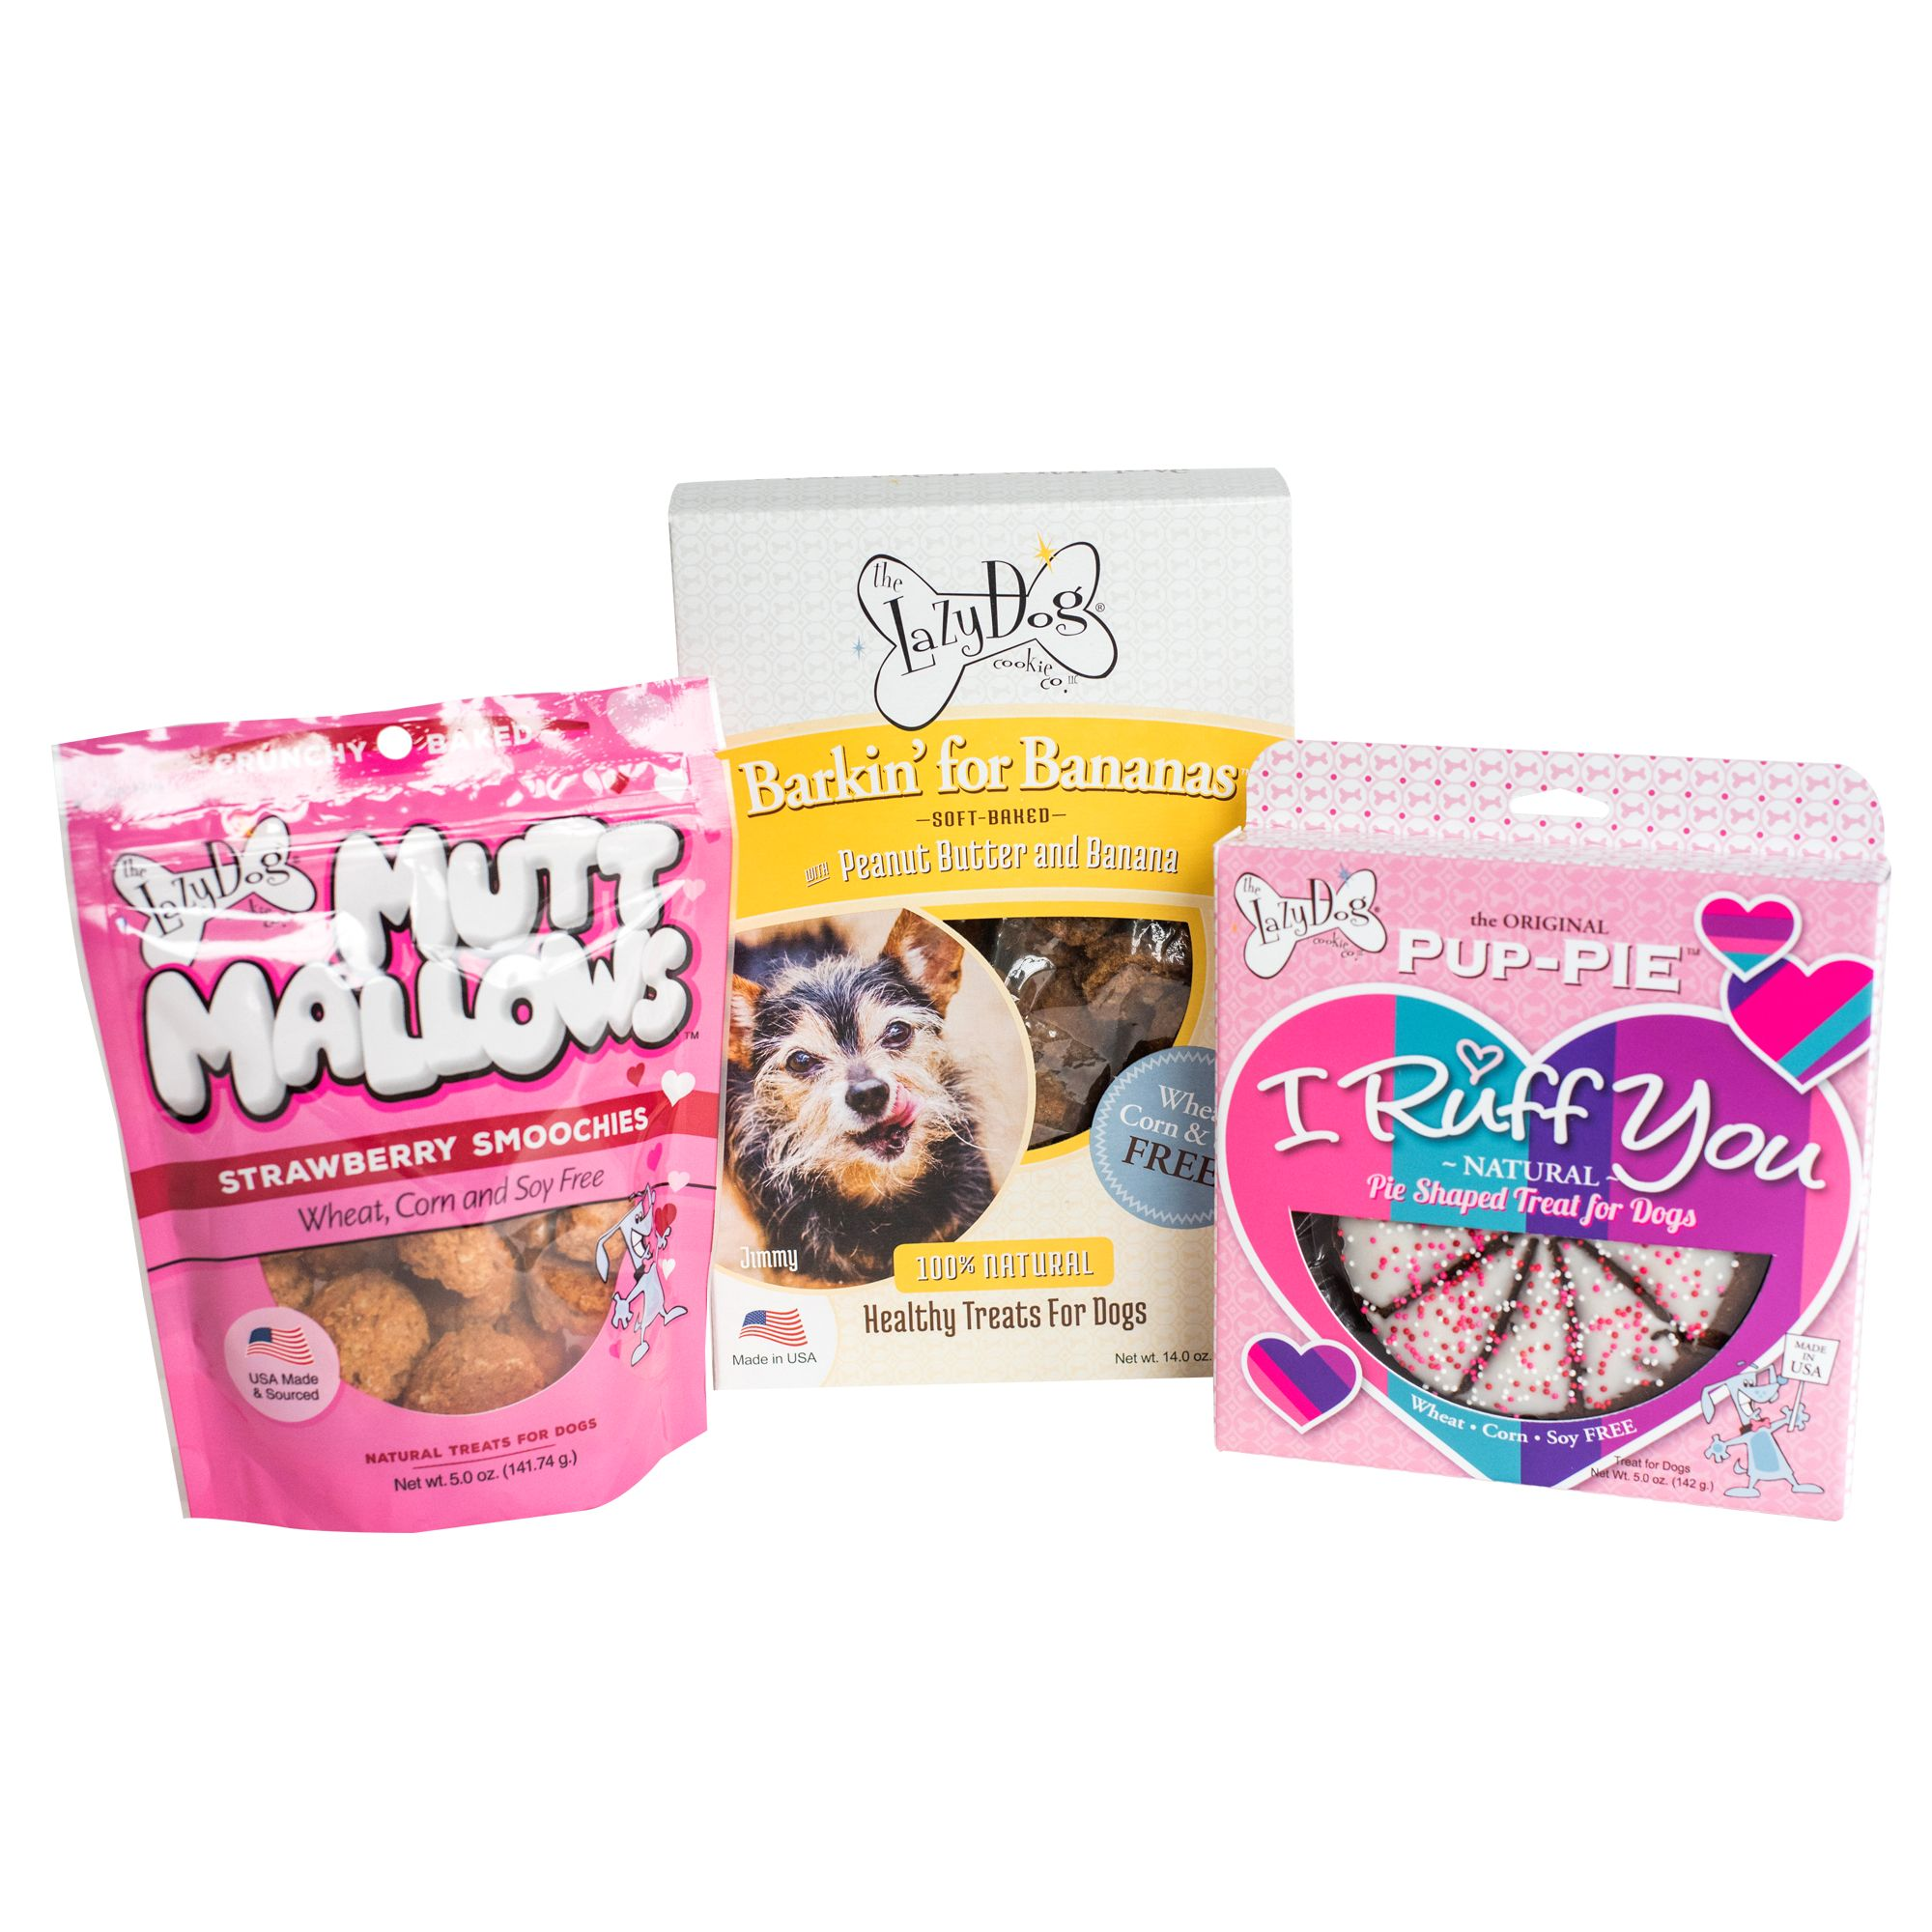 The Lazy Dog Cookie Co. I Ruff You Pup Pie Barkin For Bananas And Mutt Mallows Dog Treat Trio Set